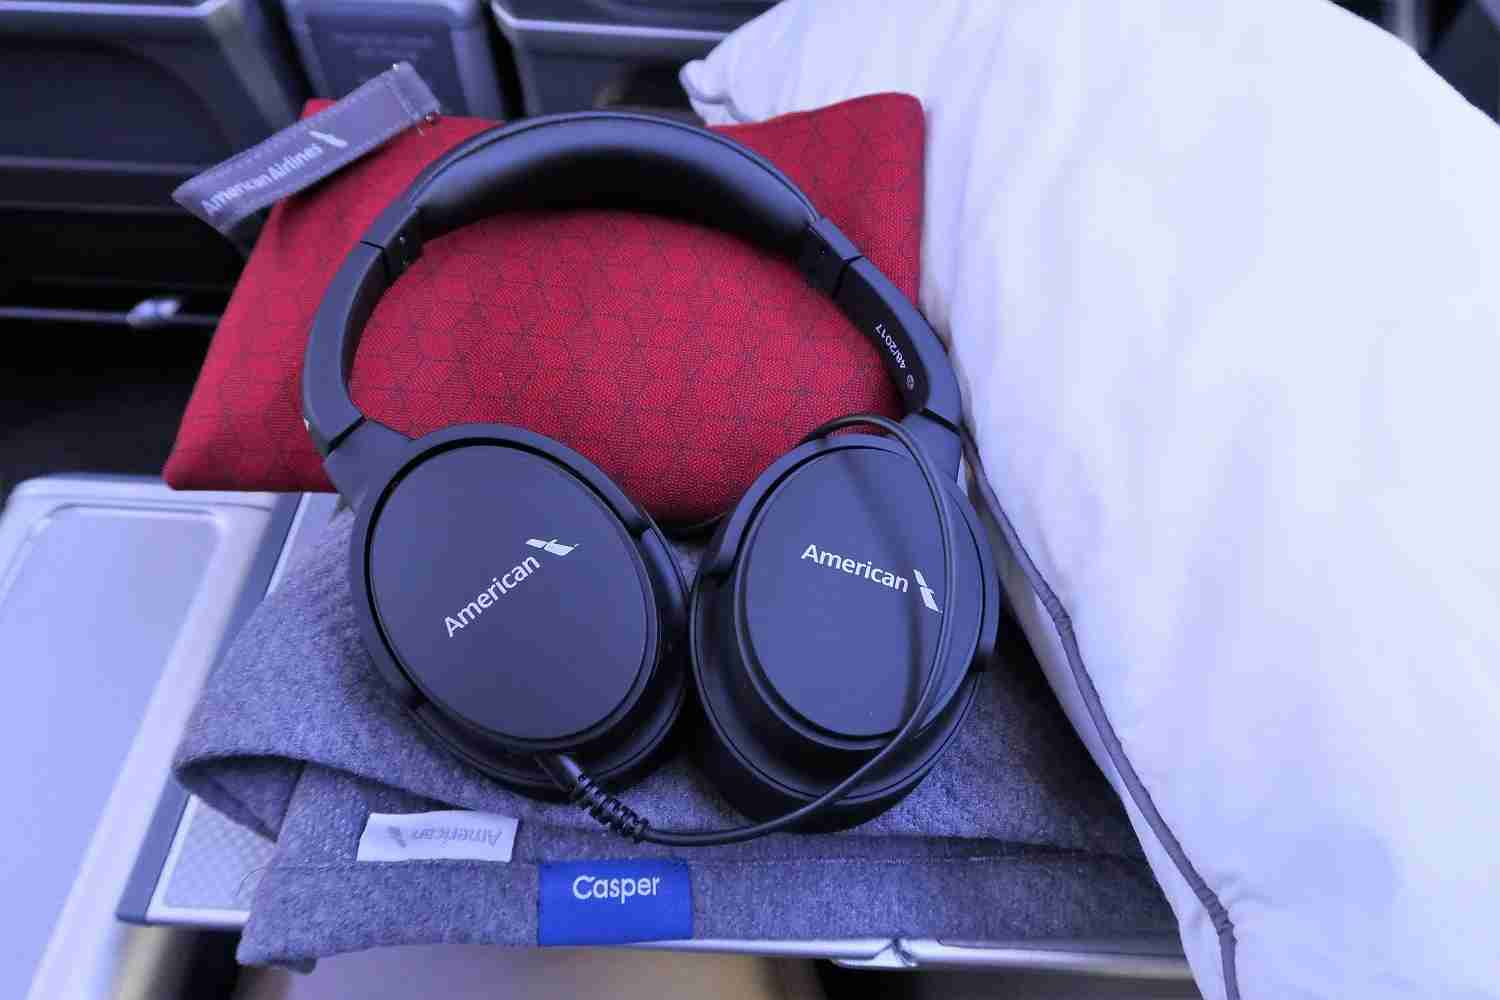 Headphones found in premium economy. (Photo by JT Genter / The Points Guy)